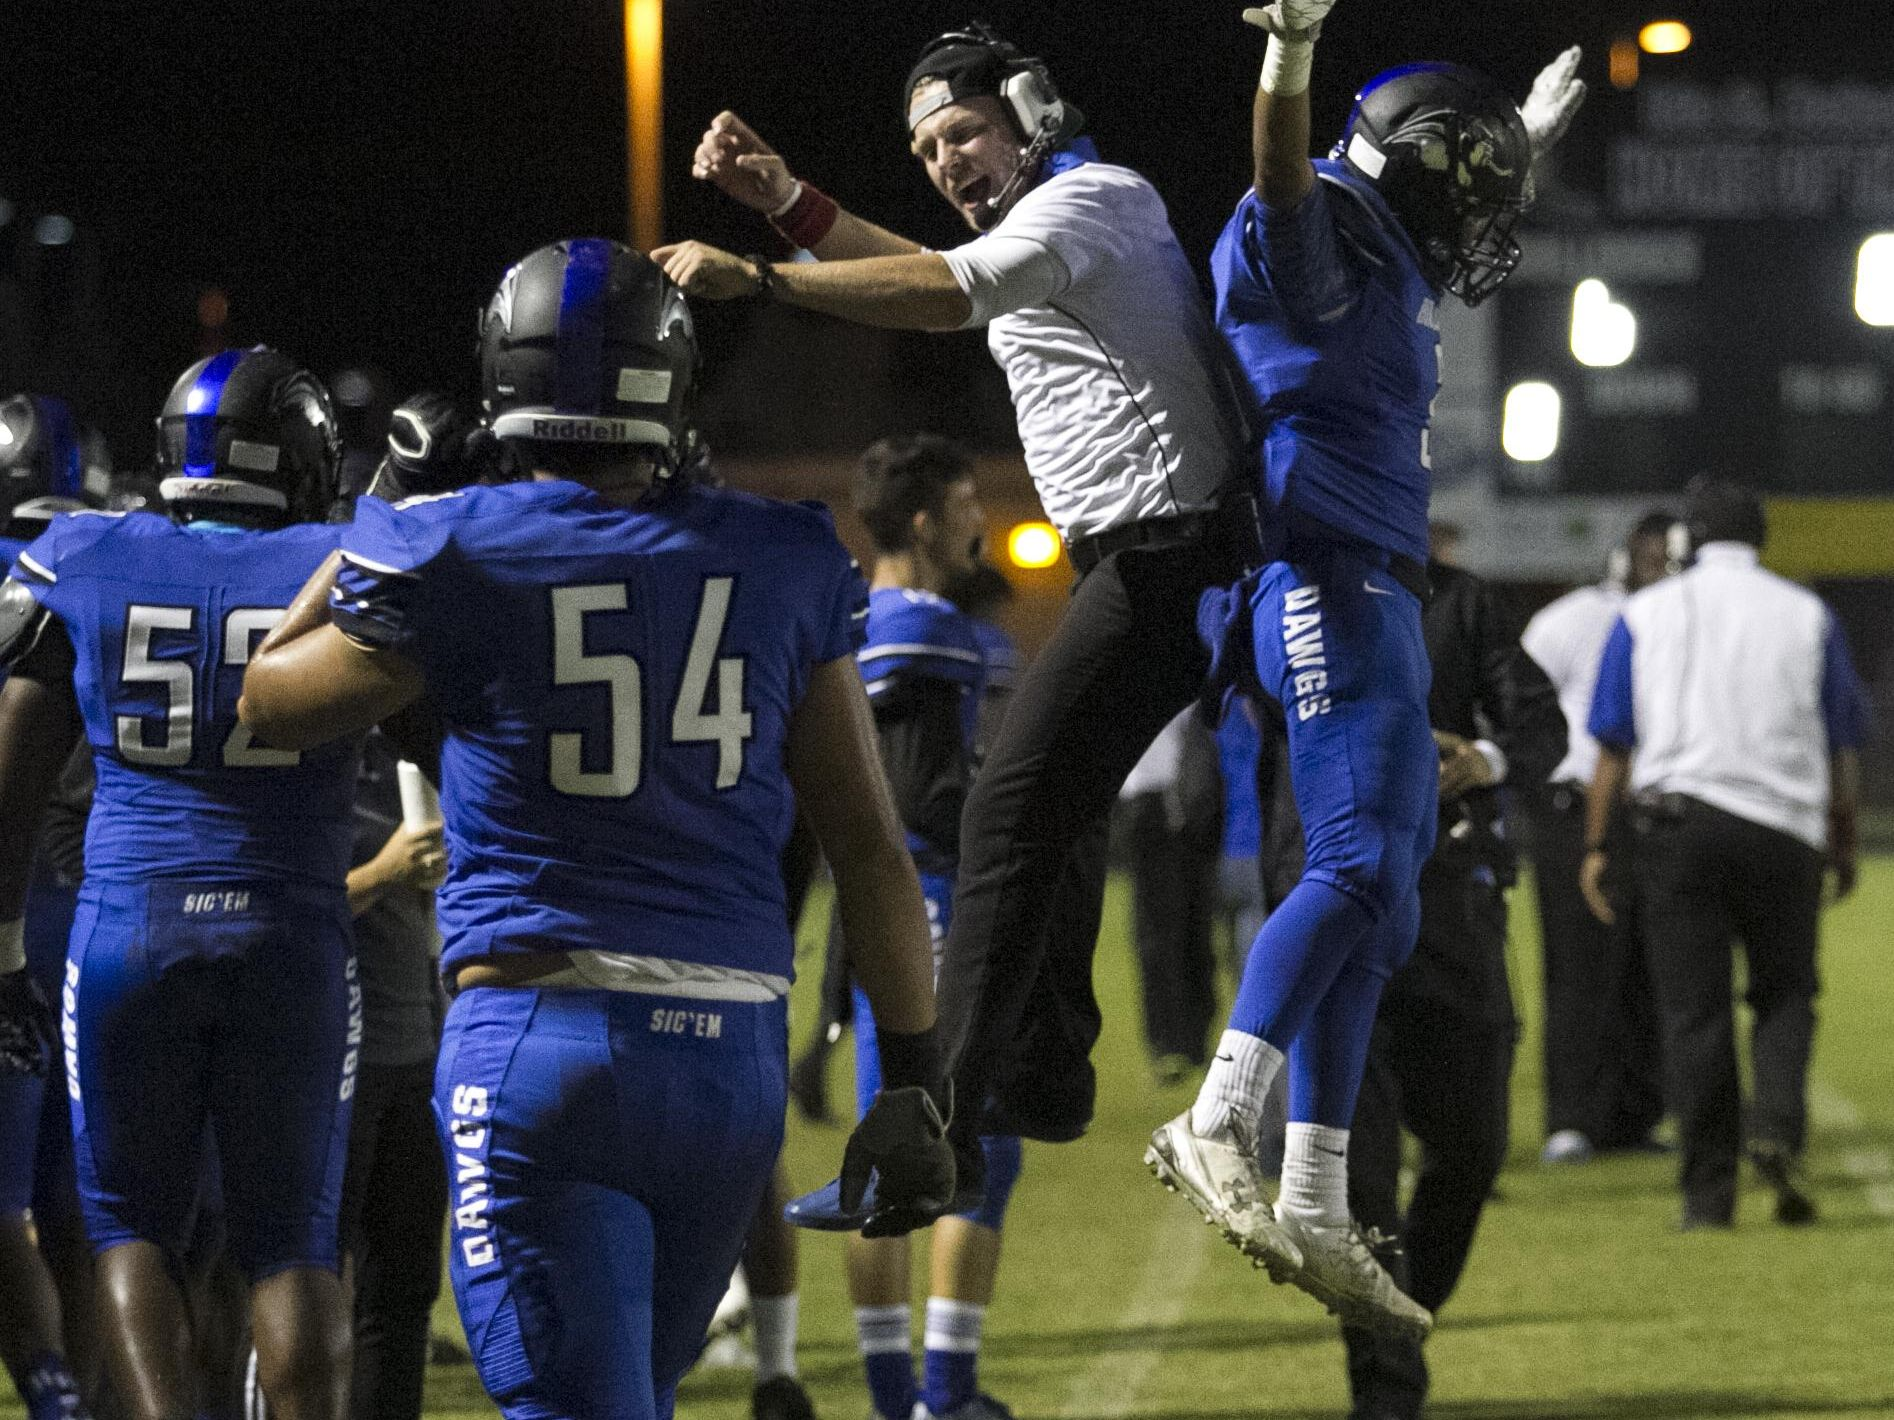 Ida Baker High School's wide receivers coach Cullen O'Brien celebrates with receiver Josh Nina after he scored a touchdown in the first half of their game against South Fort Myers Friday evening in Cape Coral.